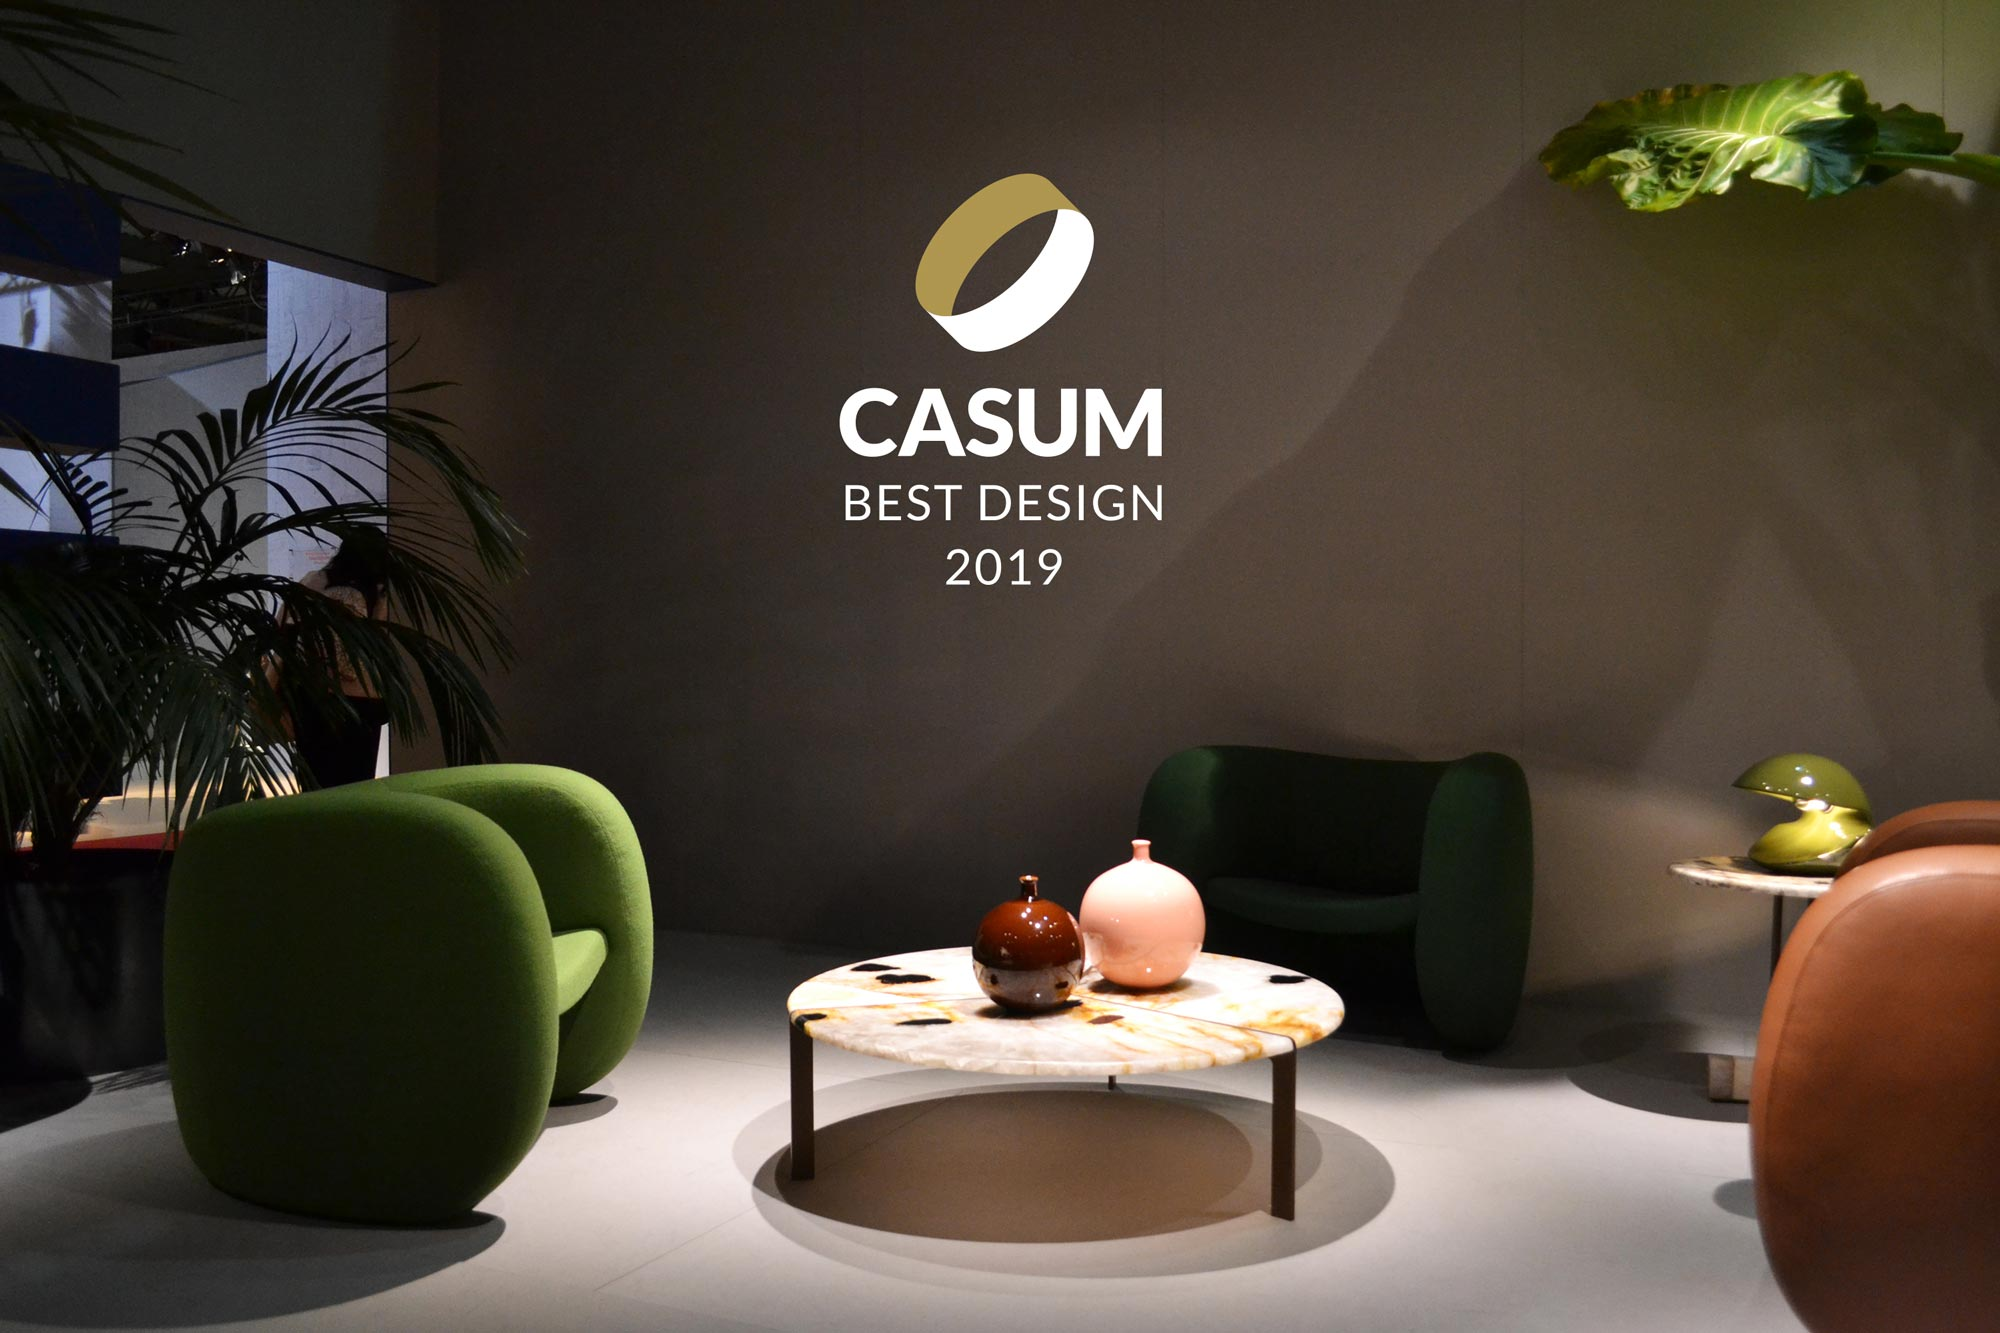 Casum Best Design 2019 winners. Tacchini booth with armchairs and coffee tables